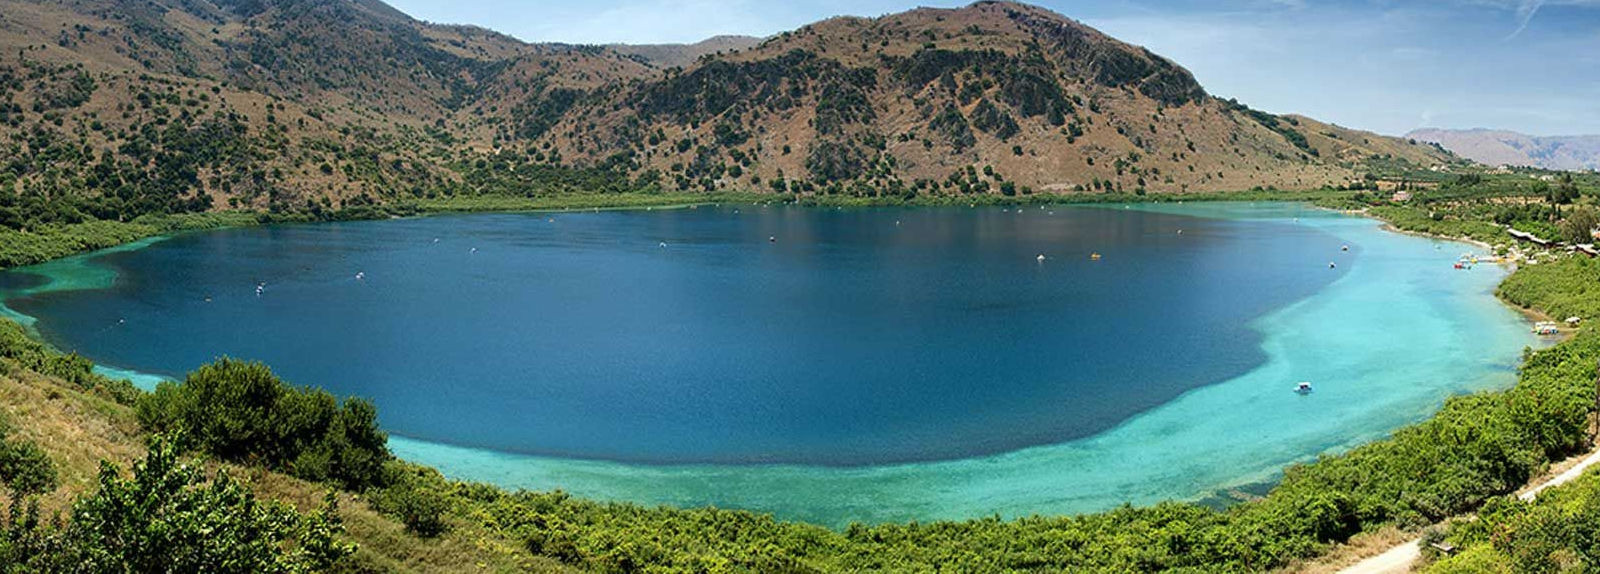 Lake Kournas, Argiroupolis & Ancient Lappa